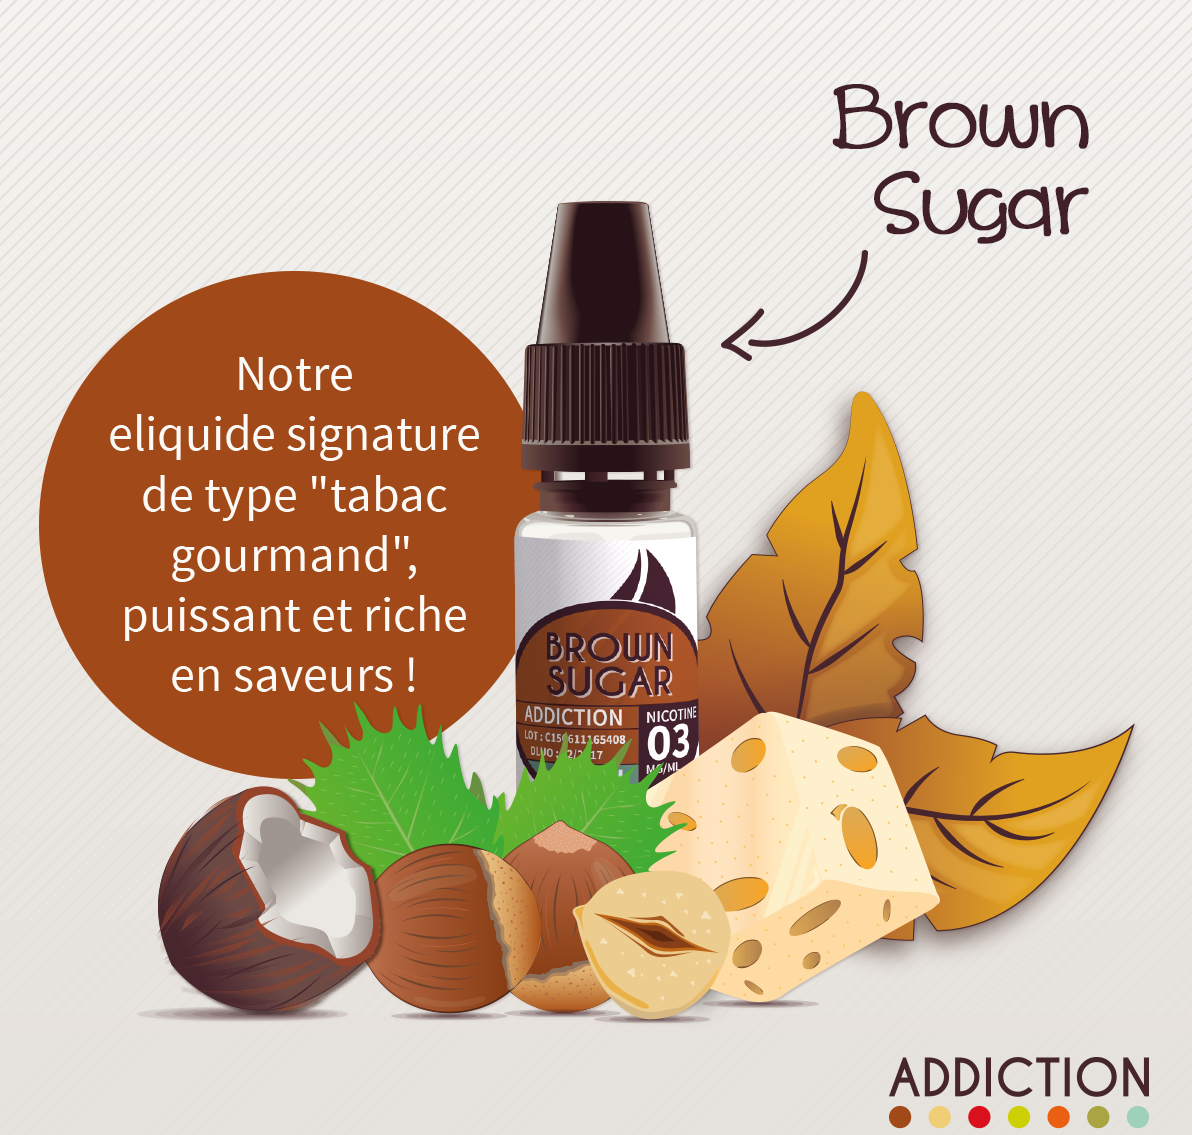 e-liquide brown sugar addiction